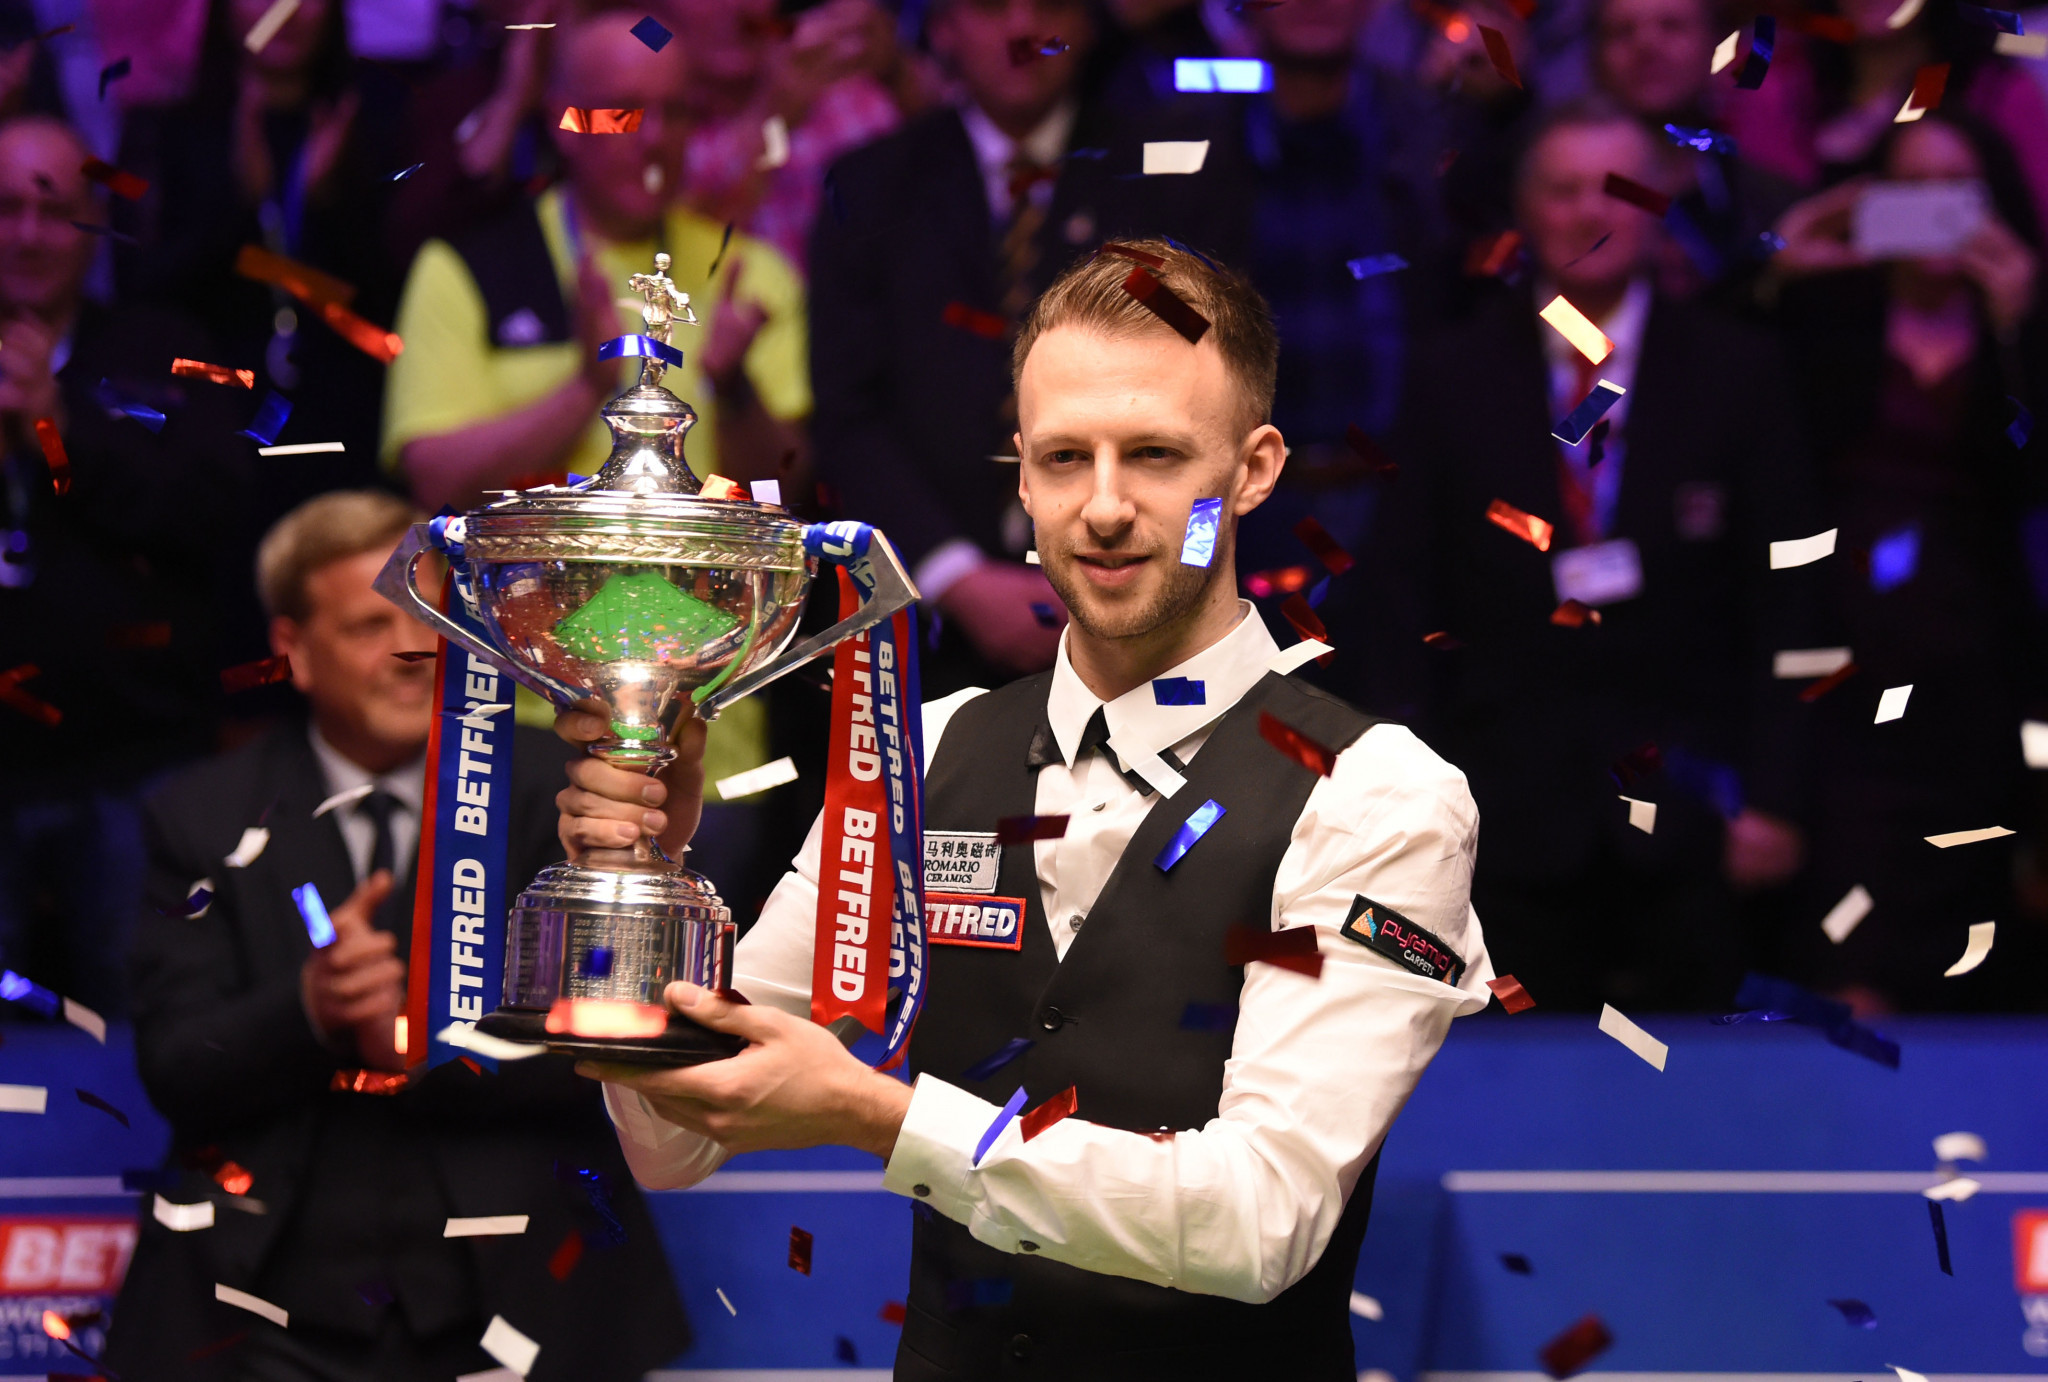 Judd Trump may defend his World Snooker Championship title in front of spectators next month if circumstances allow ©Getty Images